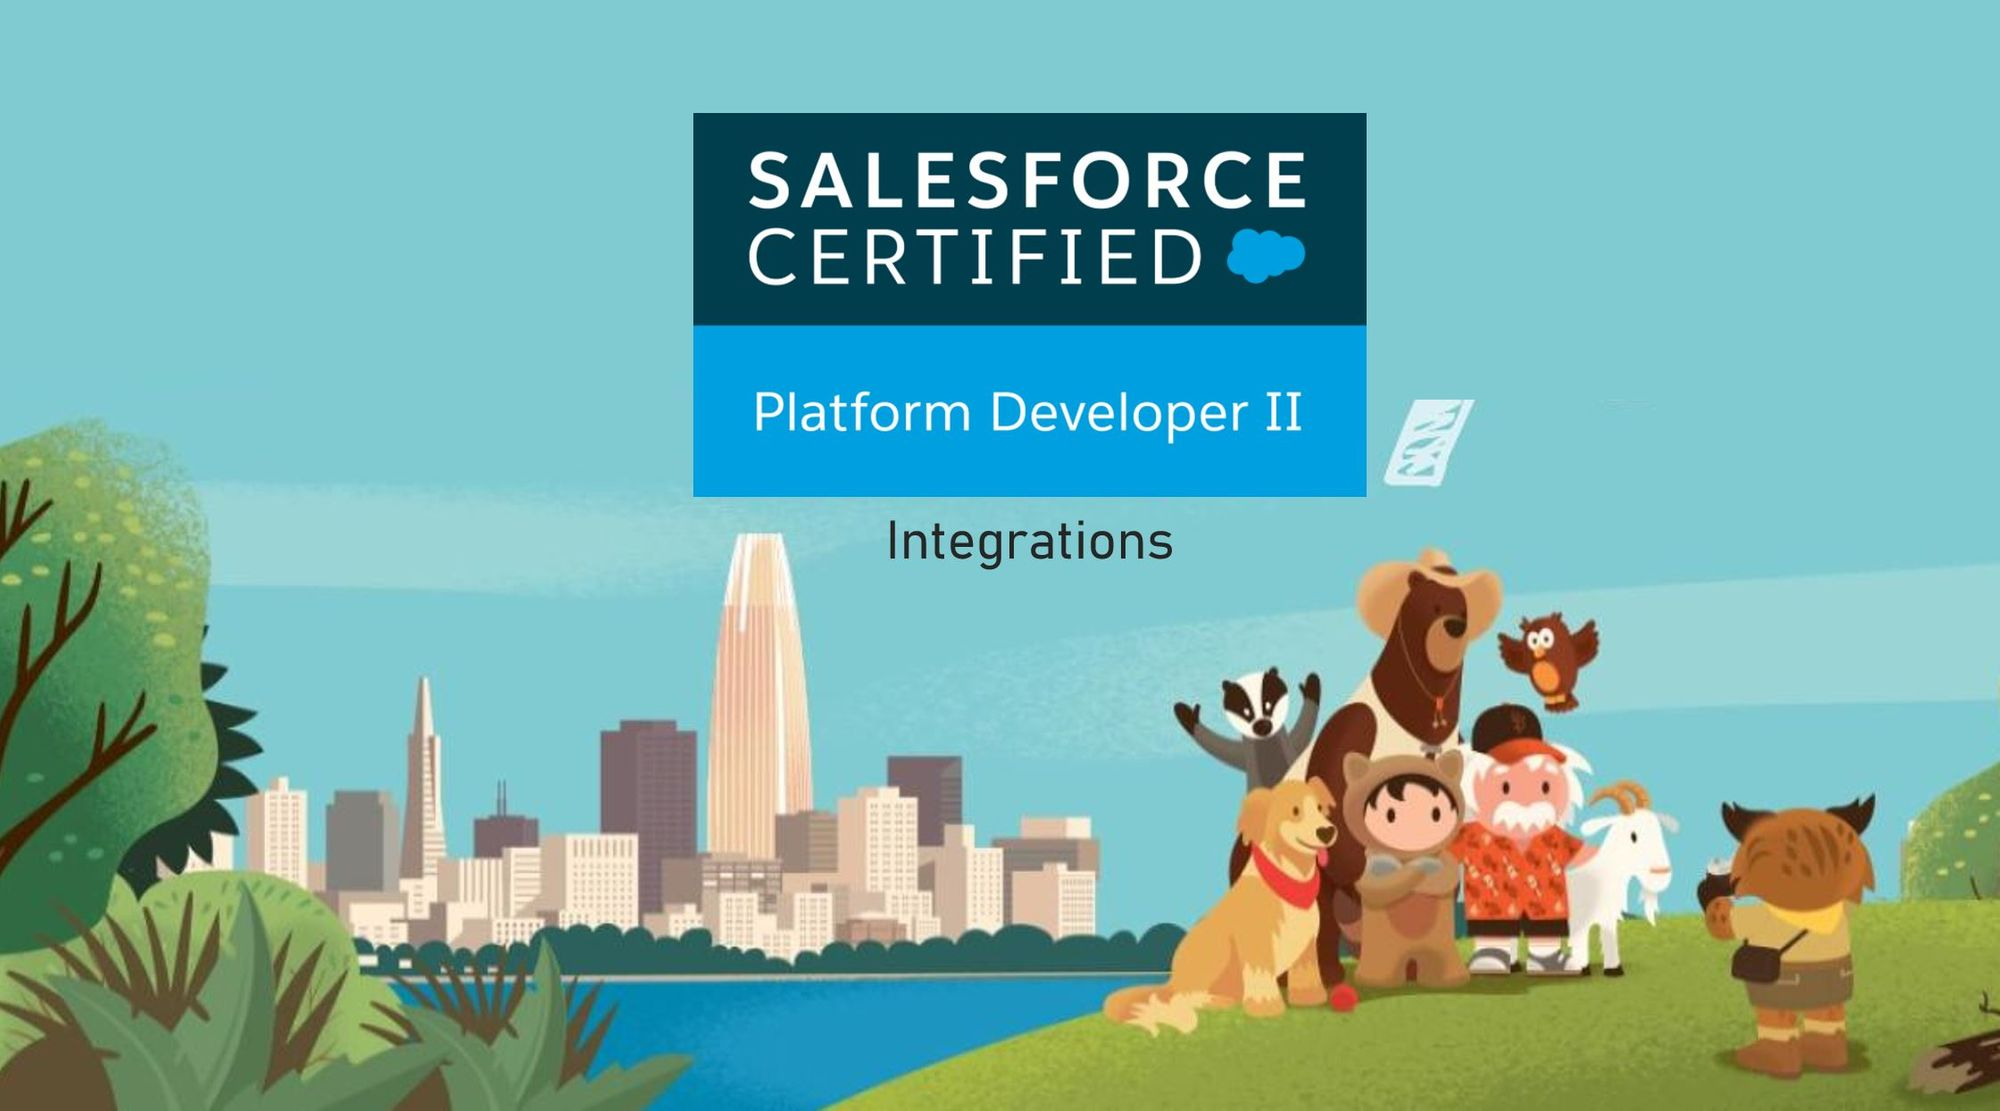 Salesforce Platform Dev II Exam Preparation: Integration